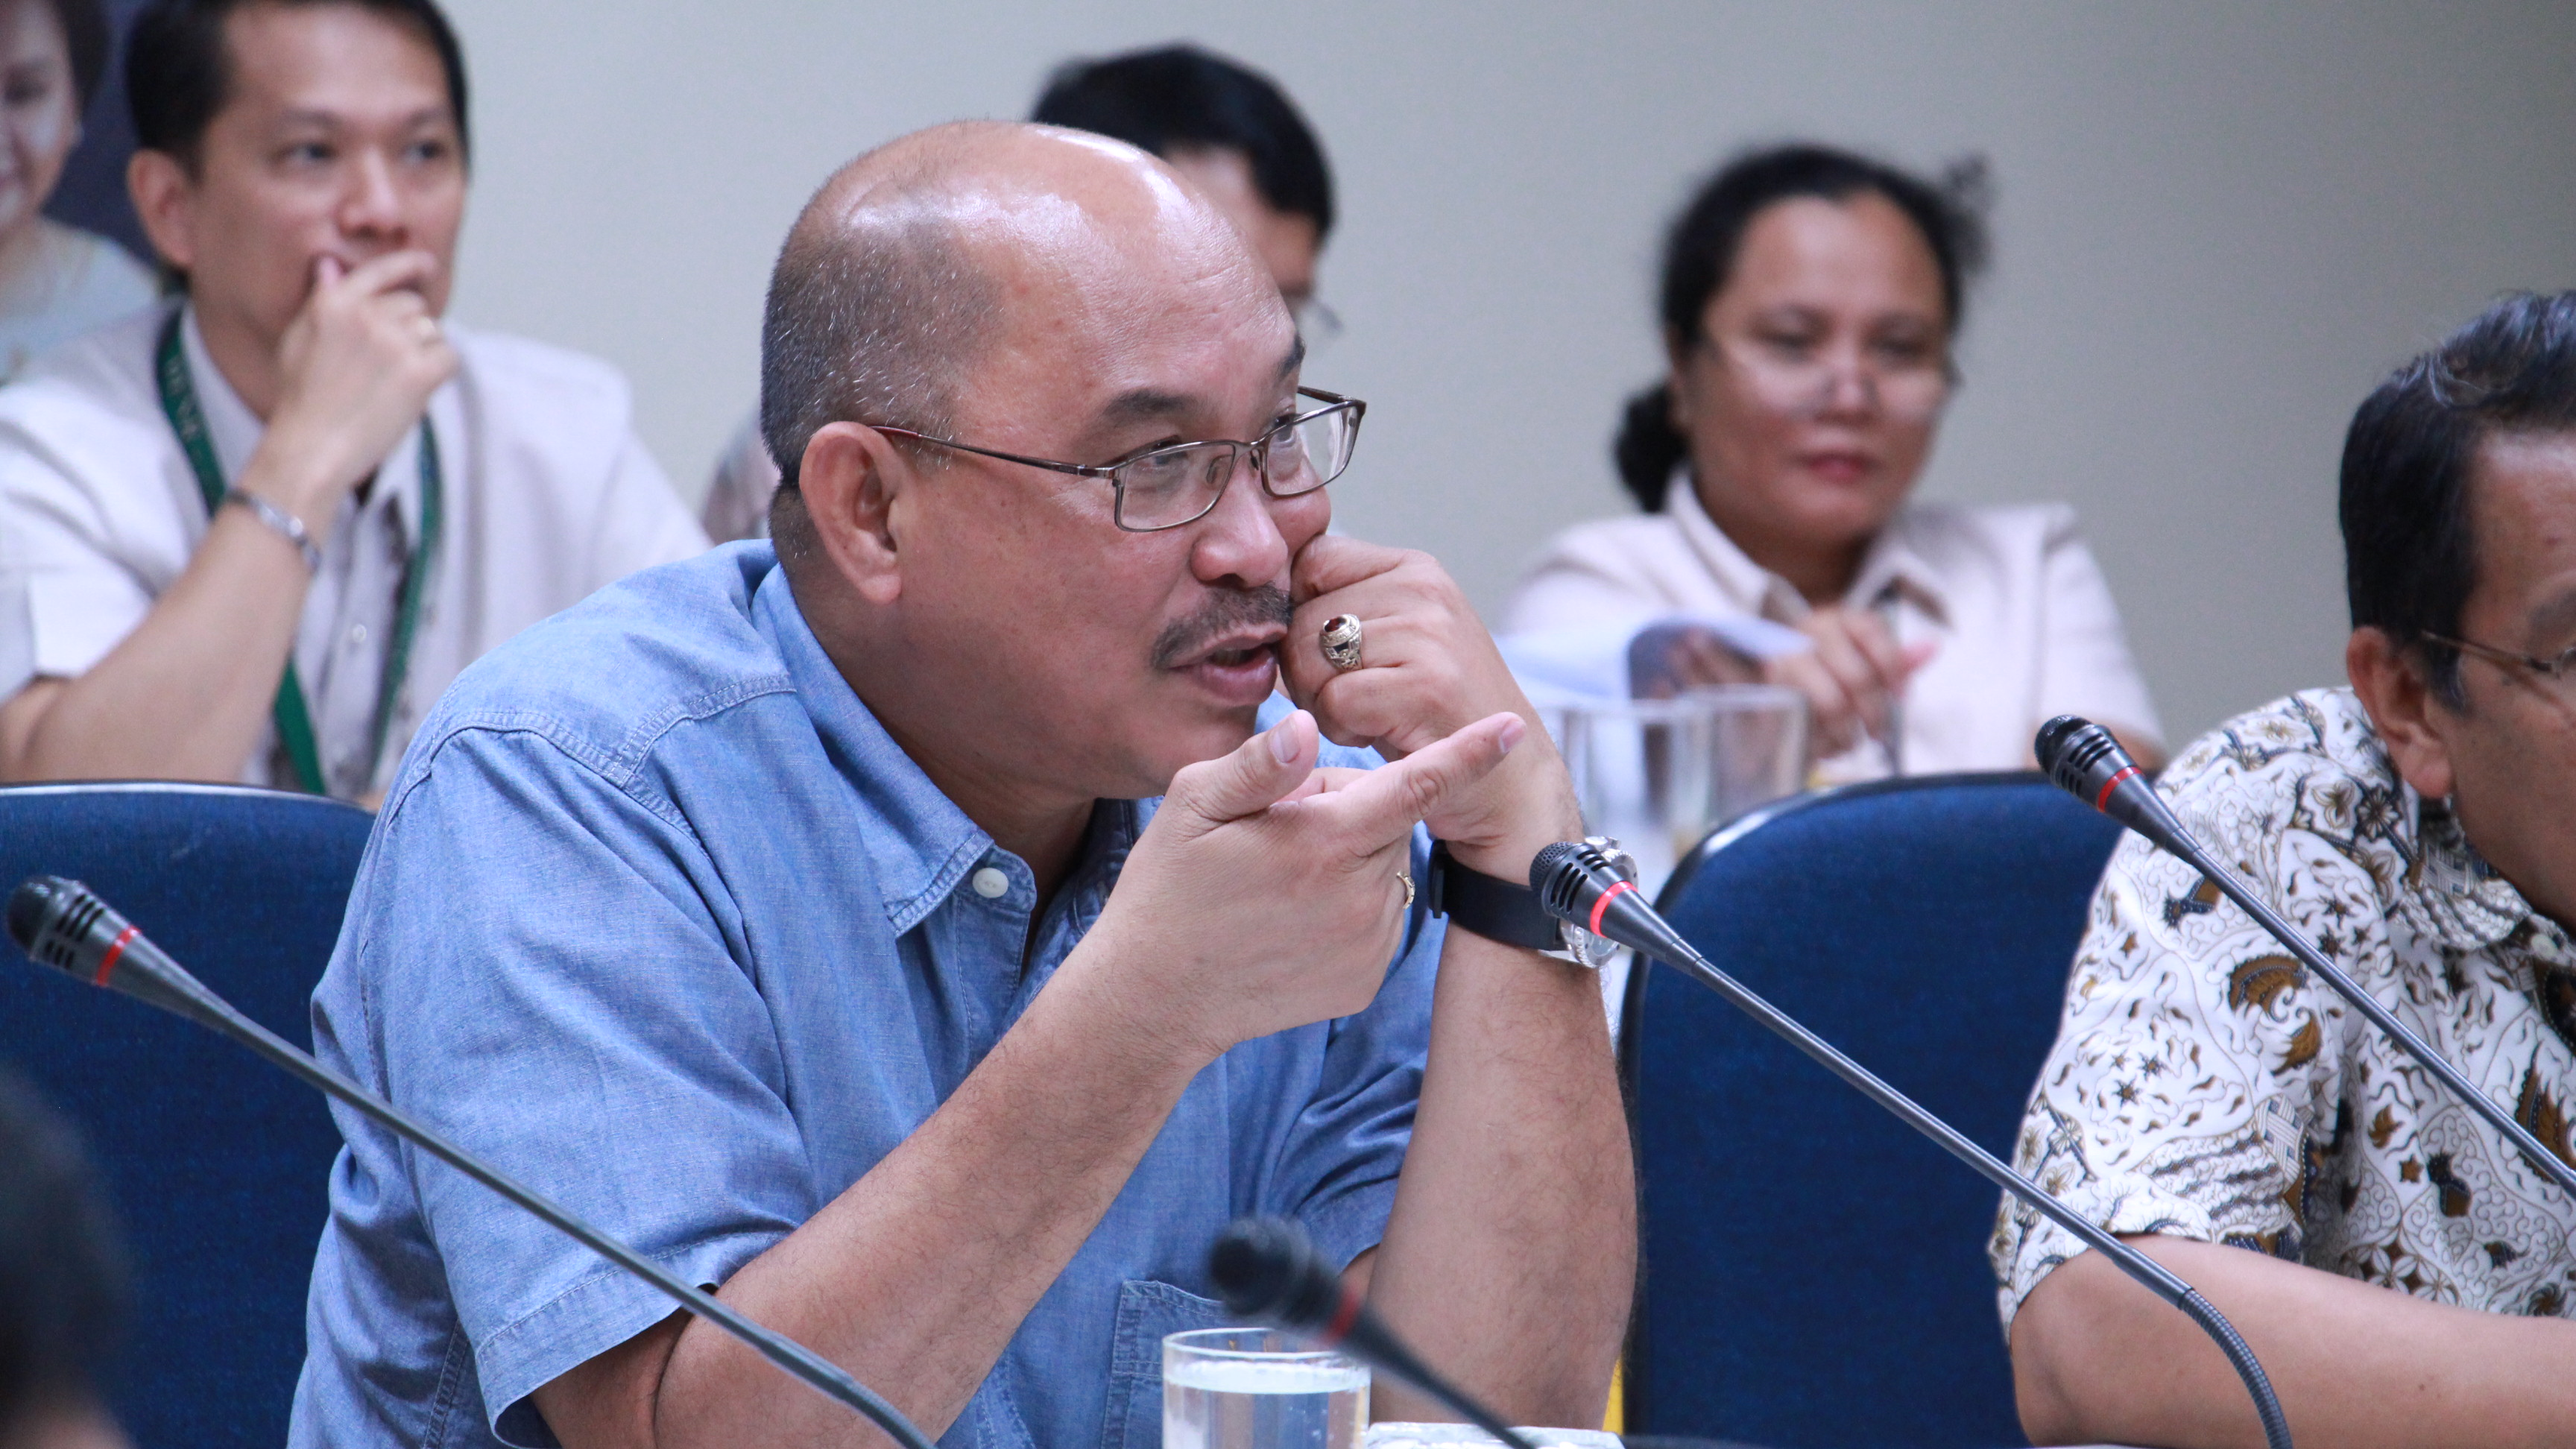 FMB Director Ricardo Calderon chairs the Project Technical Committee